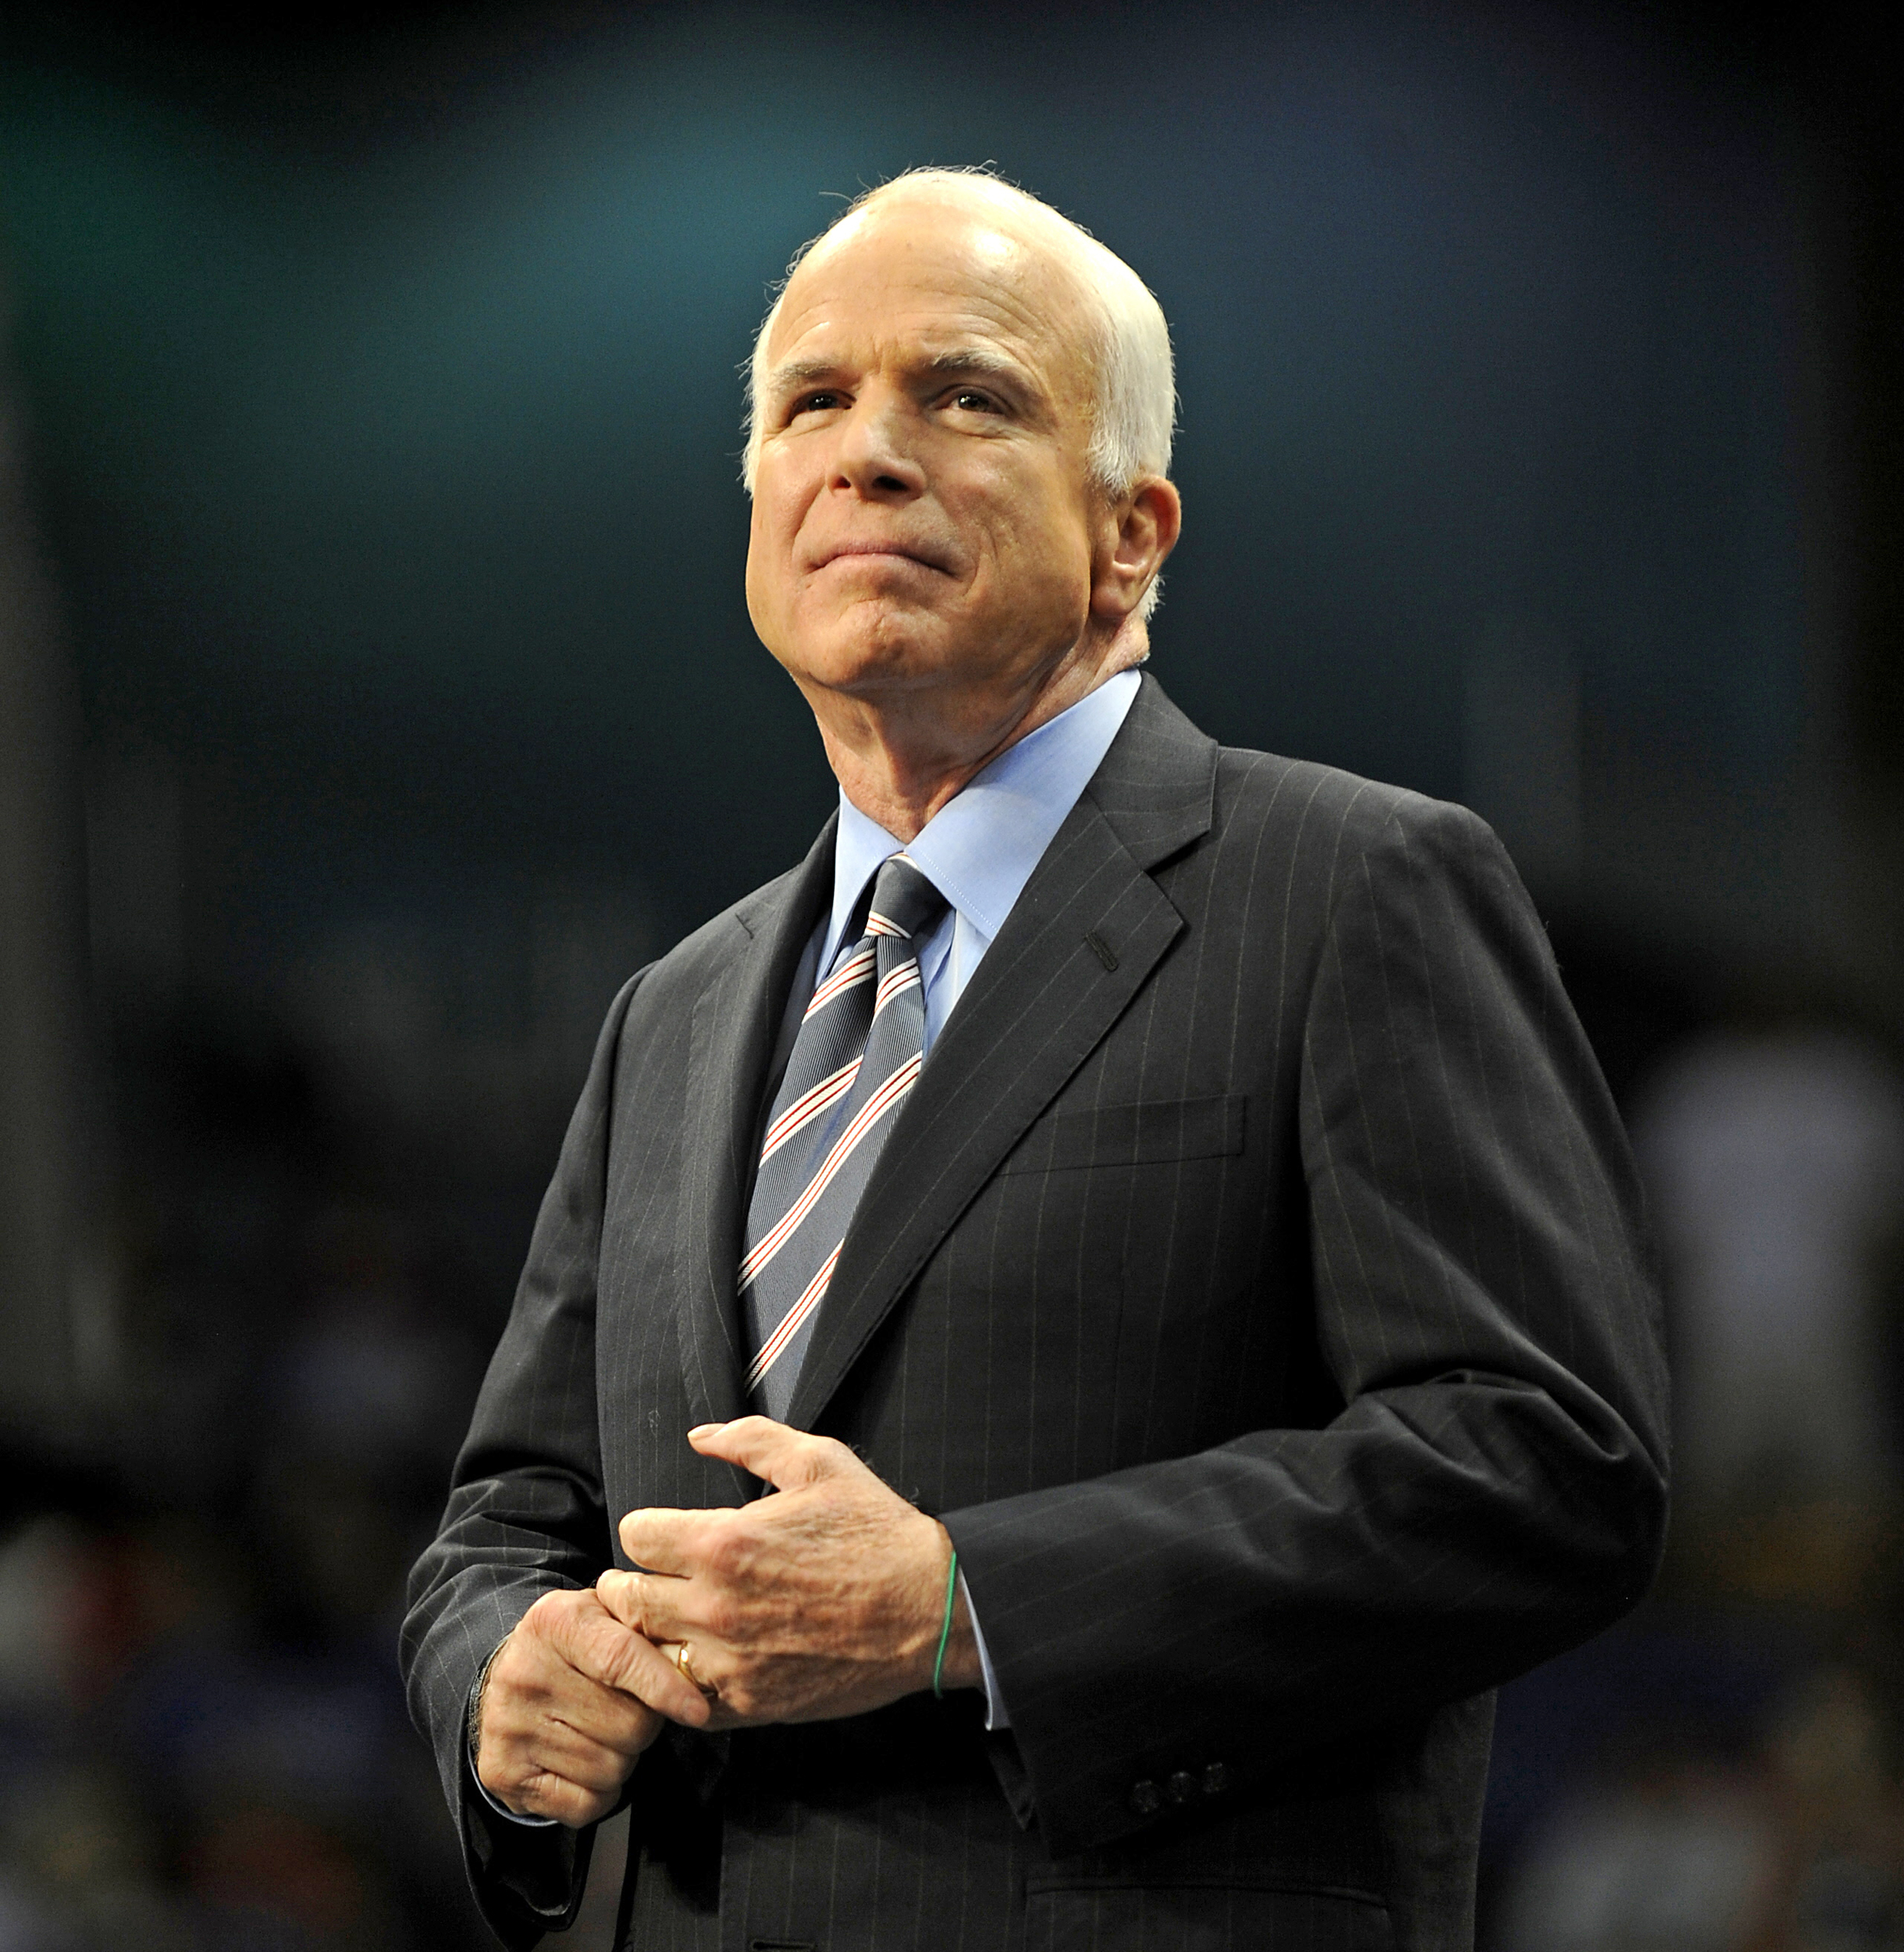 John Mccain Latest News Photos And Videos: Sen. John McCain, Independent Voice Of The GOP